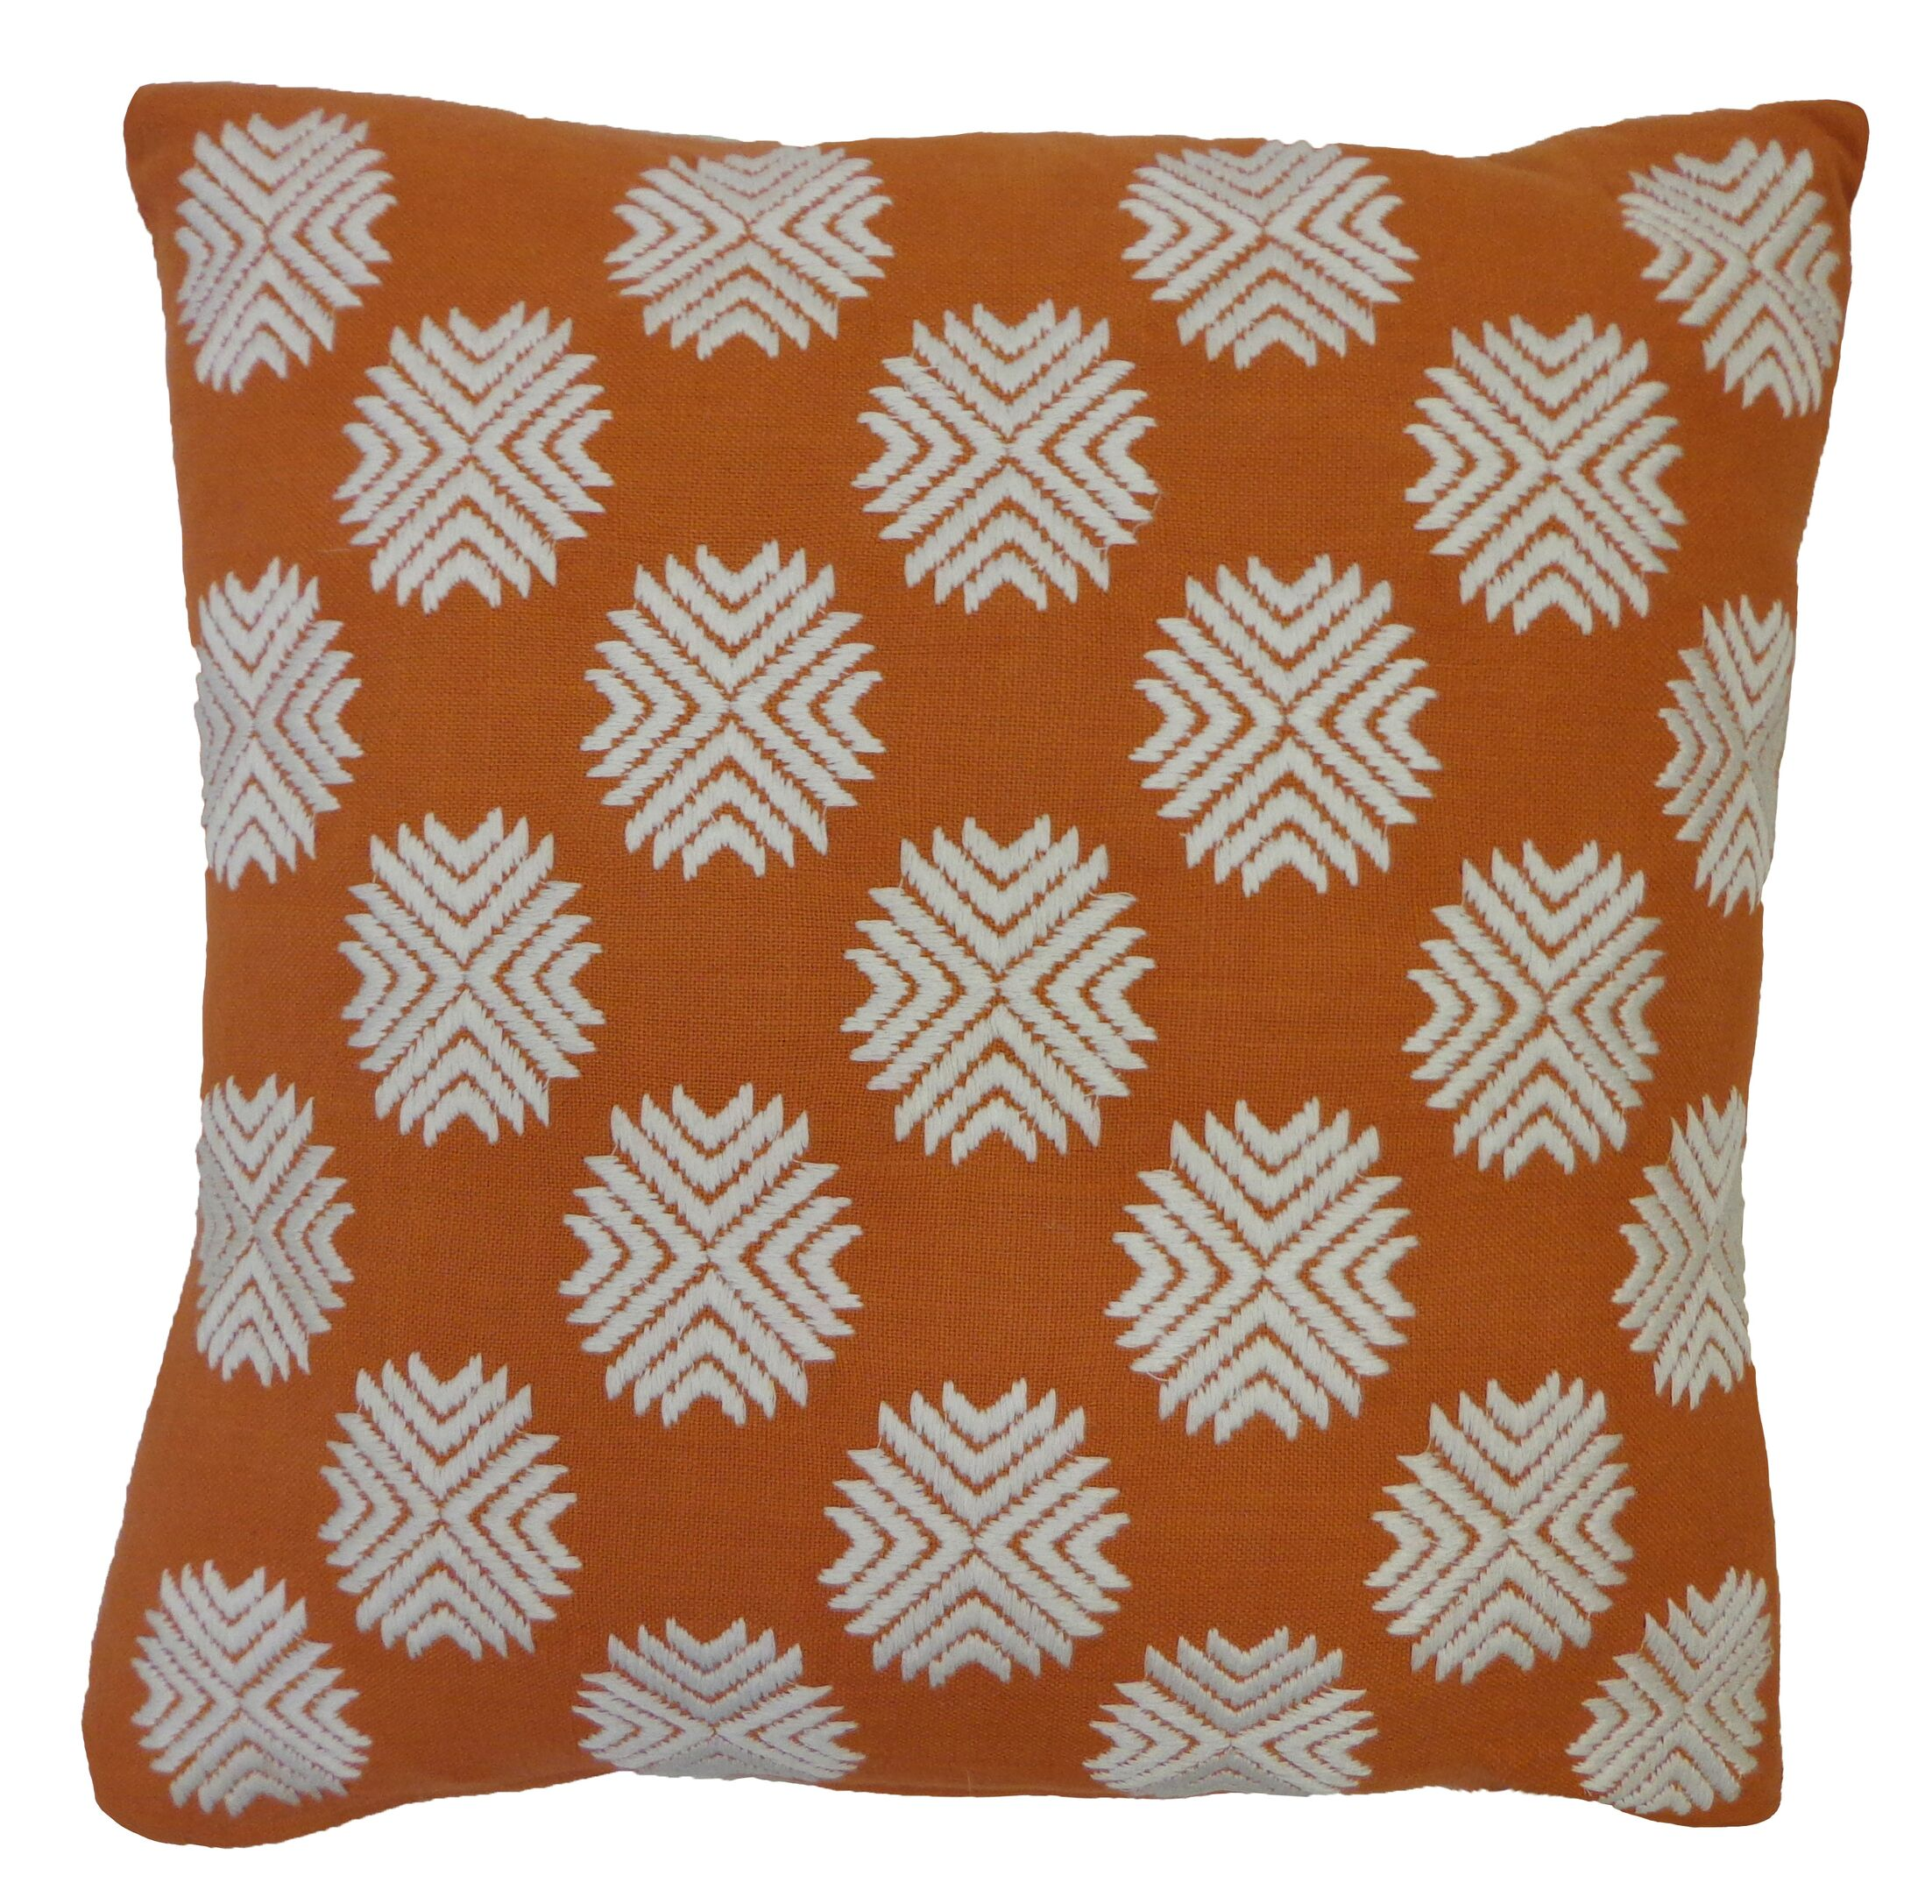 Bright and Fresh Cotton Throw Pillow